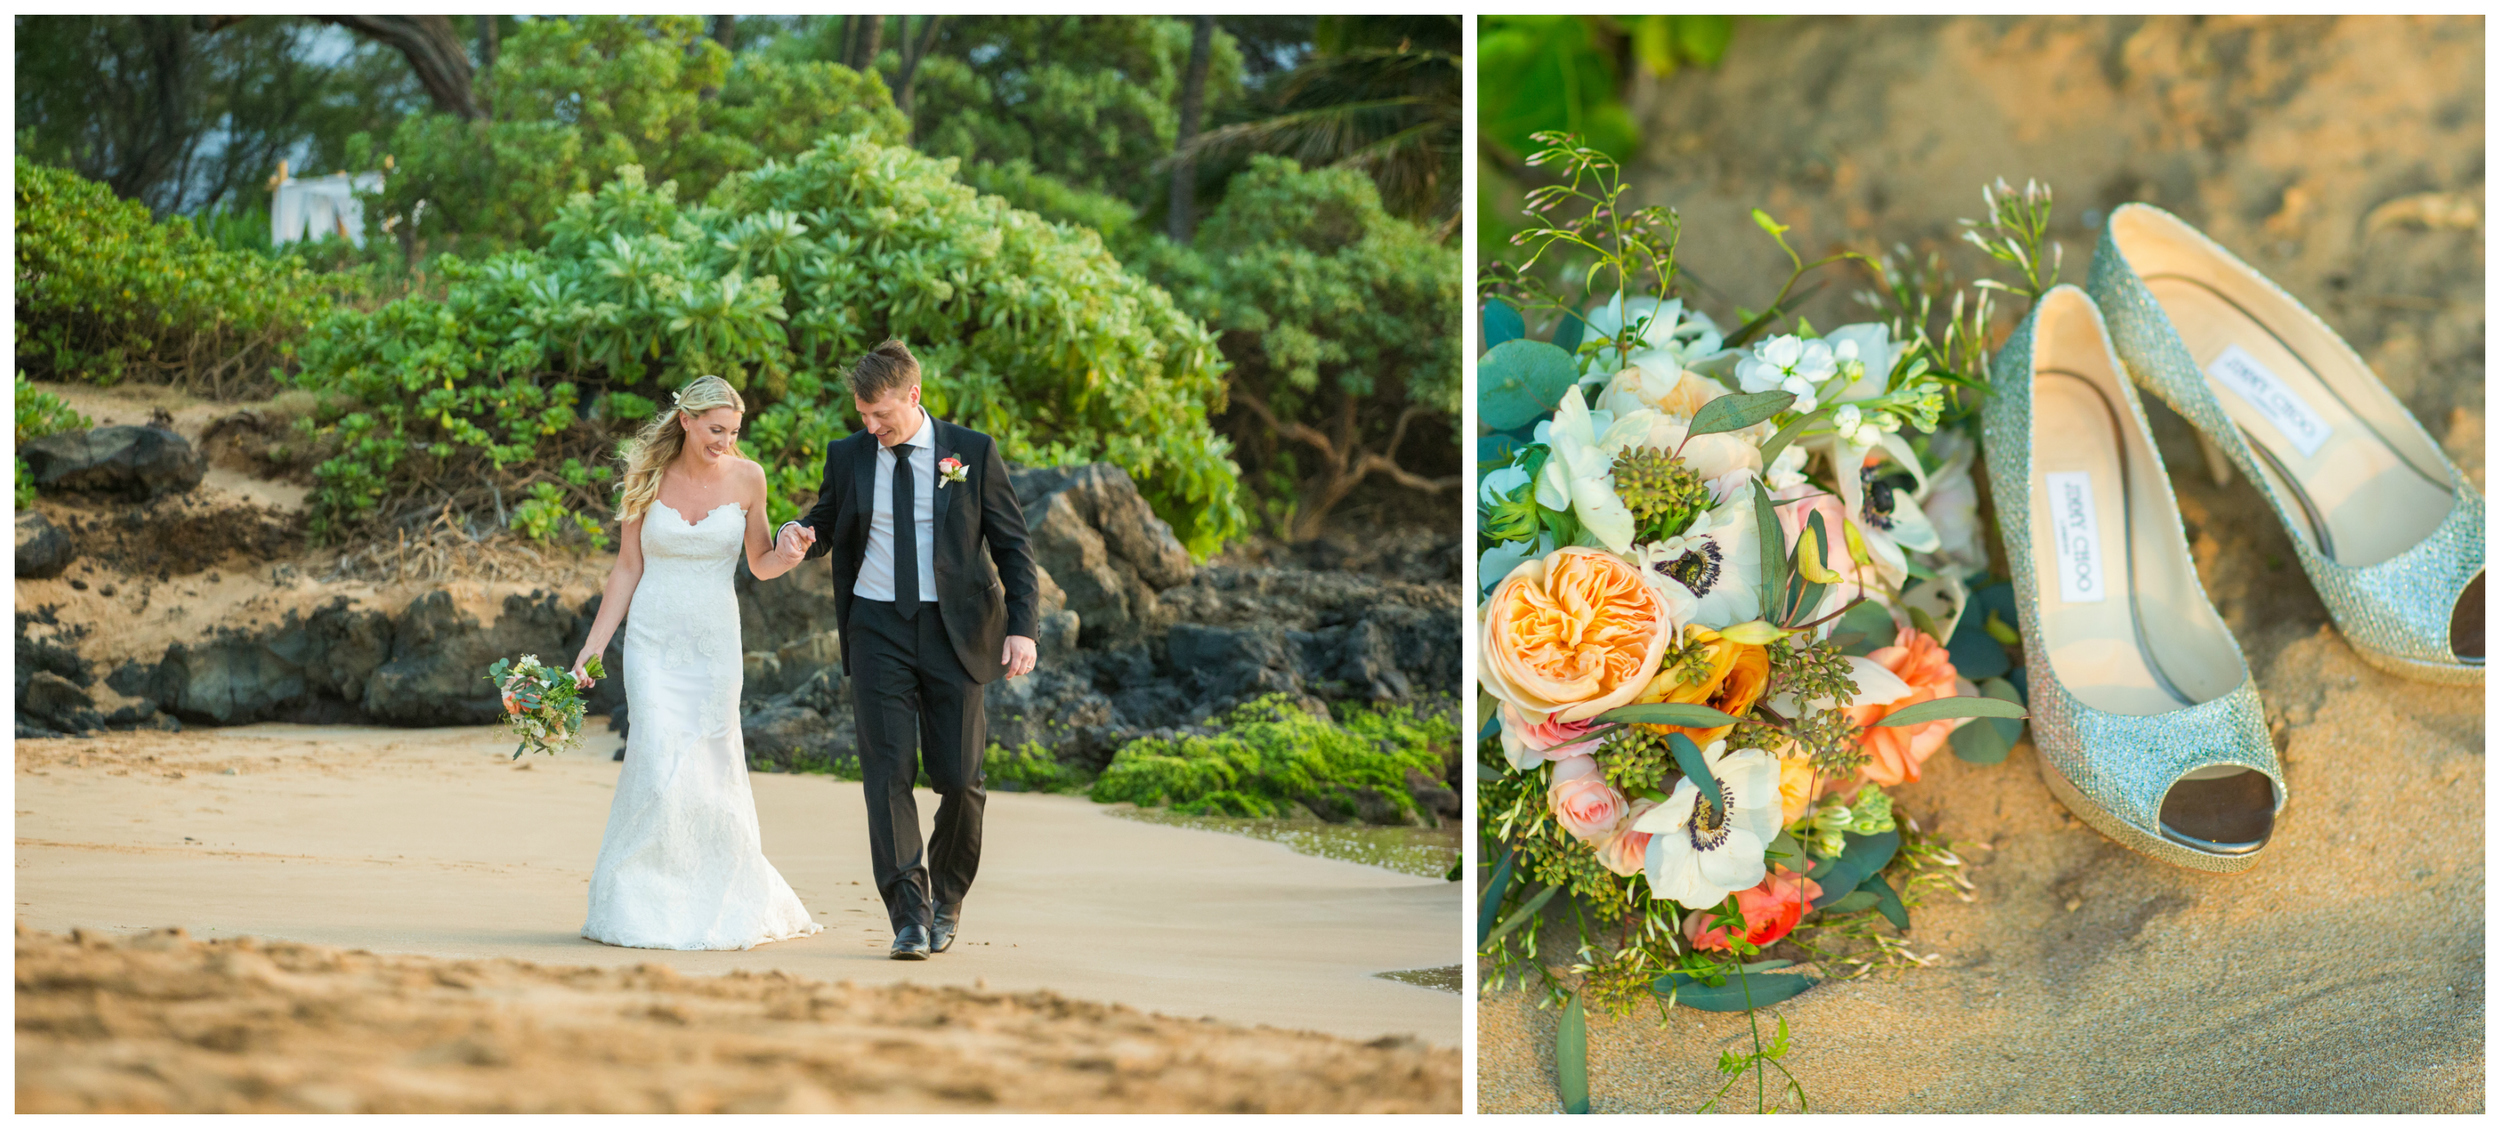 Romantic Maui Wedding Photography Coral Weddings